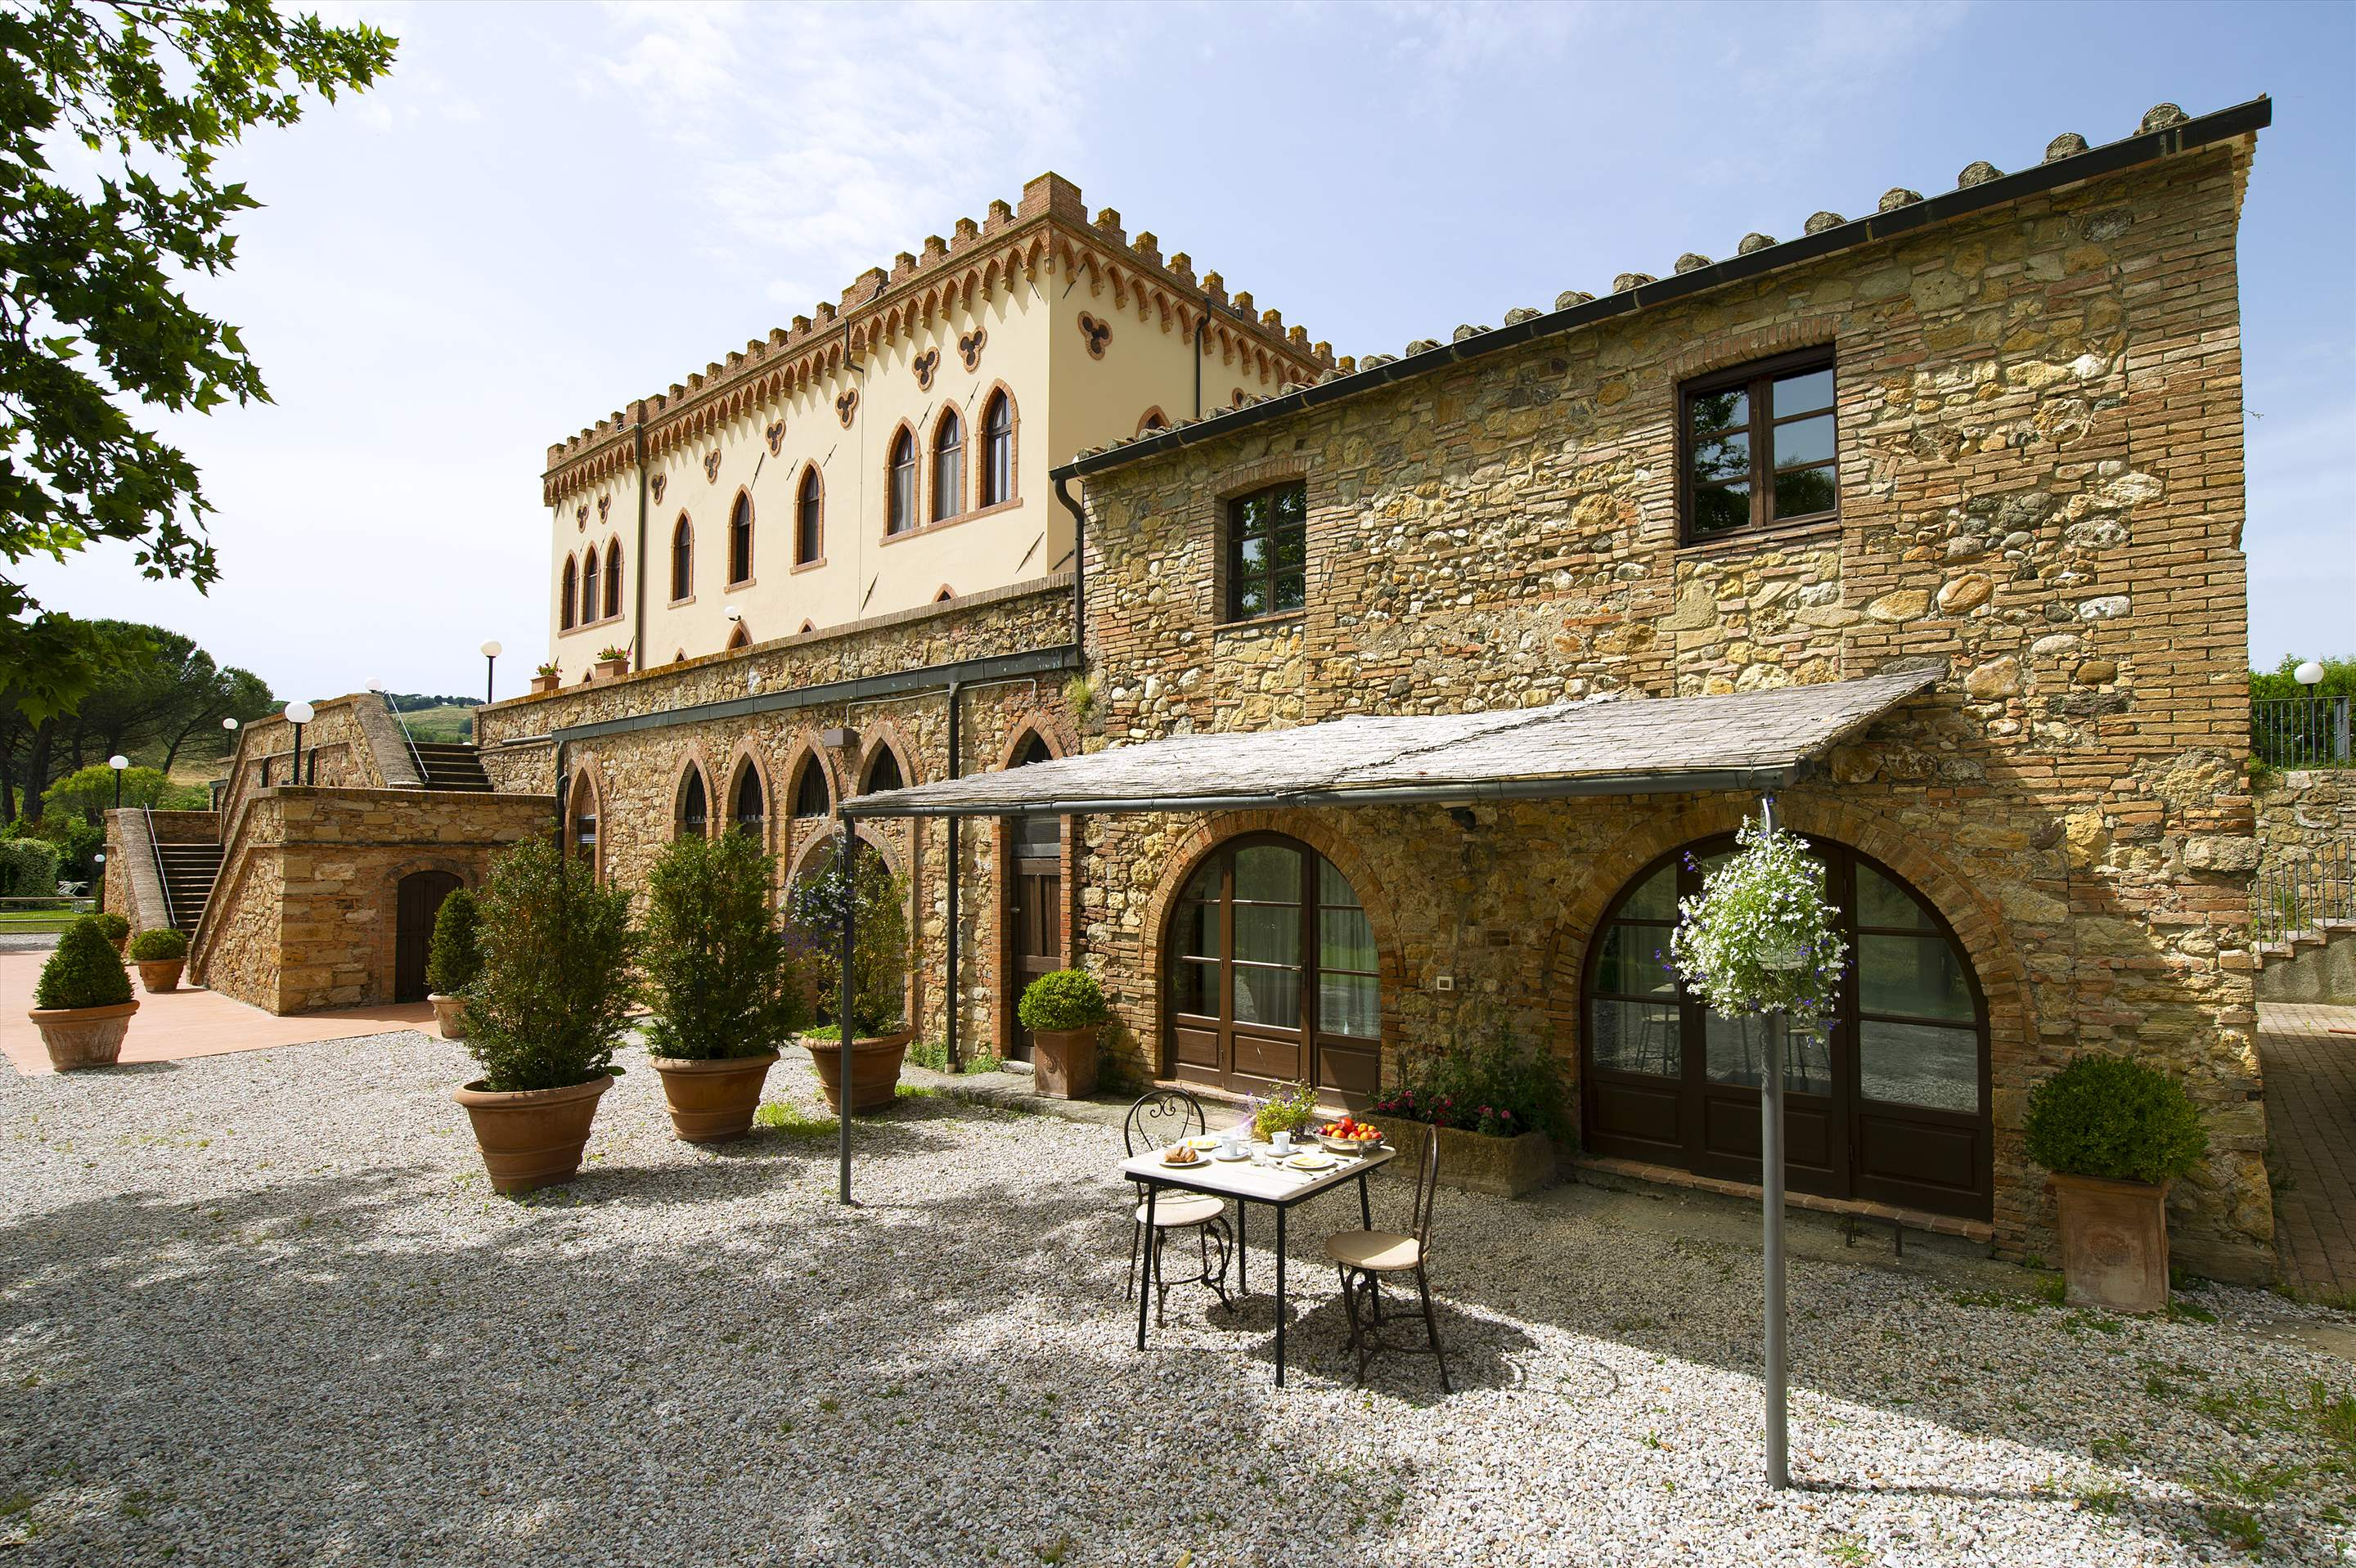 Villa Di Archi & Dependance, 9 bedroom villa in Tuscany Coast, Tuscany Photo #3